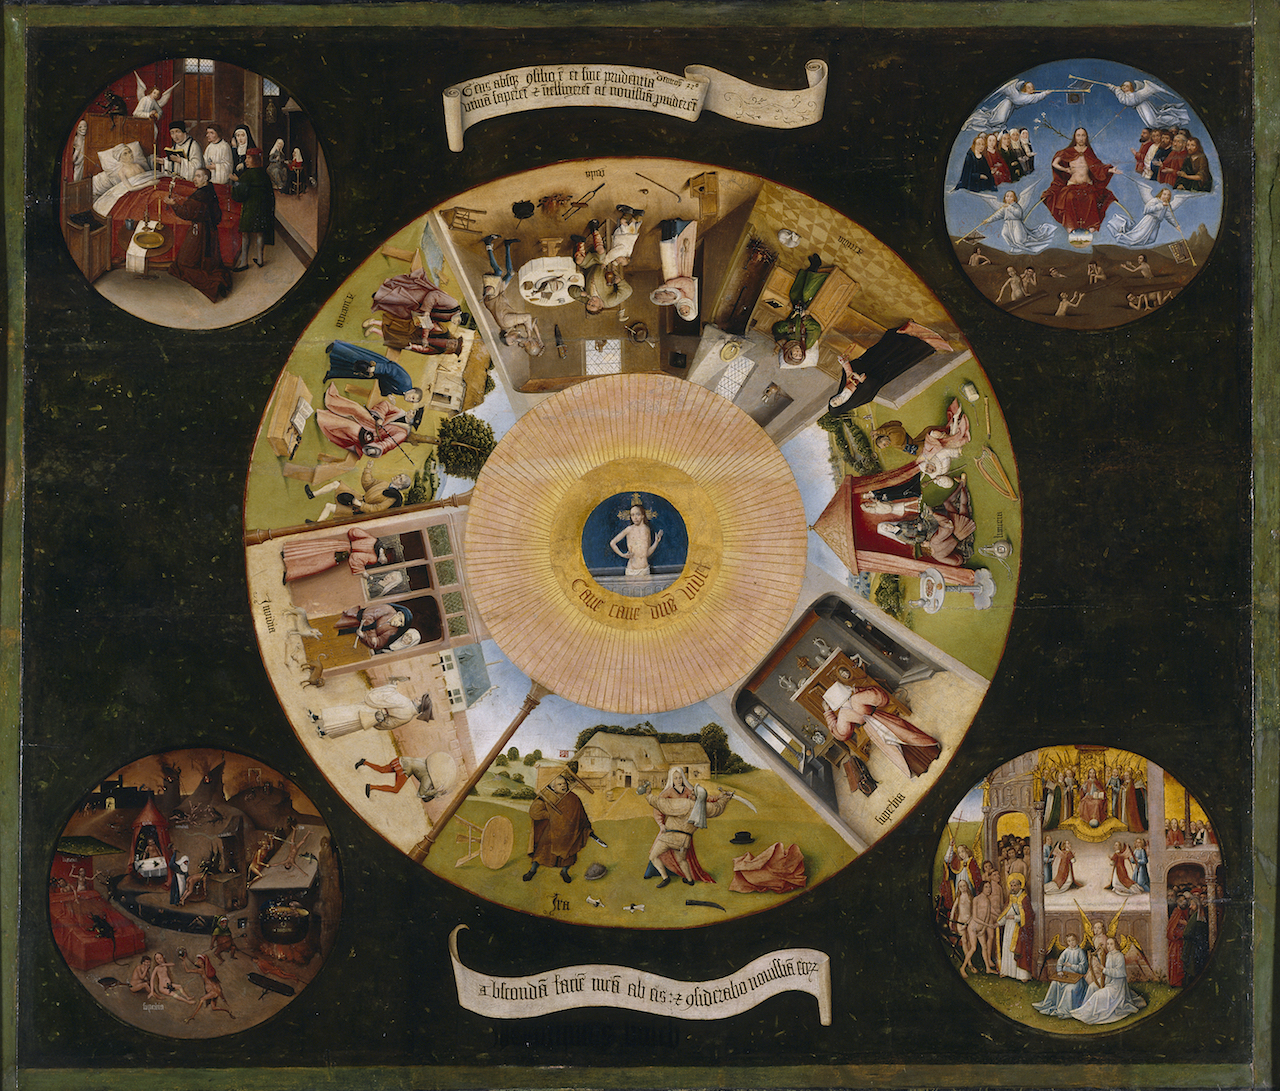 """Follower of Hieronymus Bosch, """"Seven Deadly Sins and the Four Last Things"""" (around 1500) (image via Wikipedia)"""